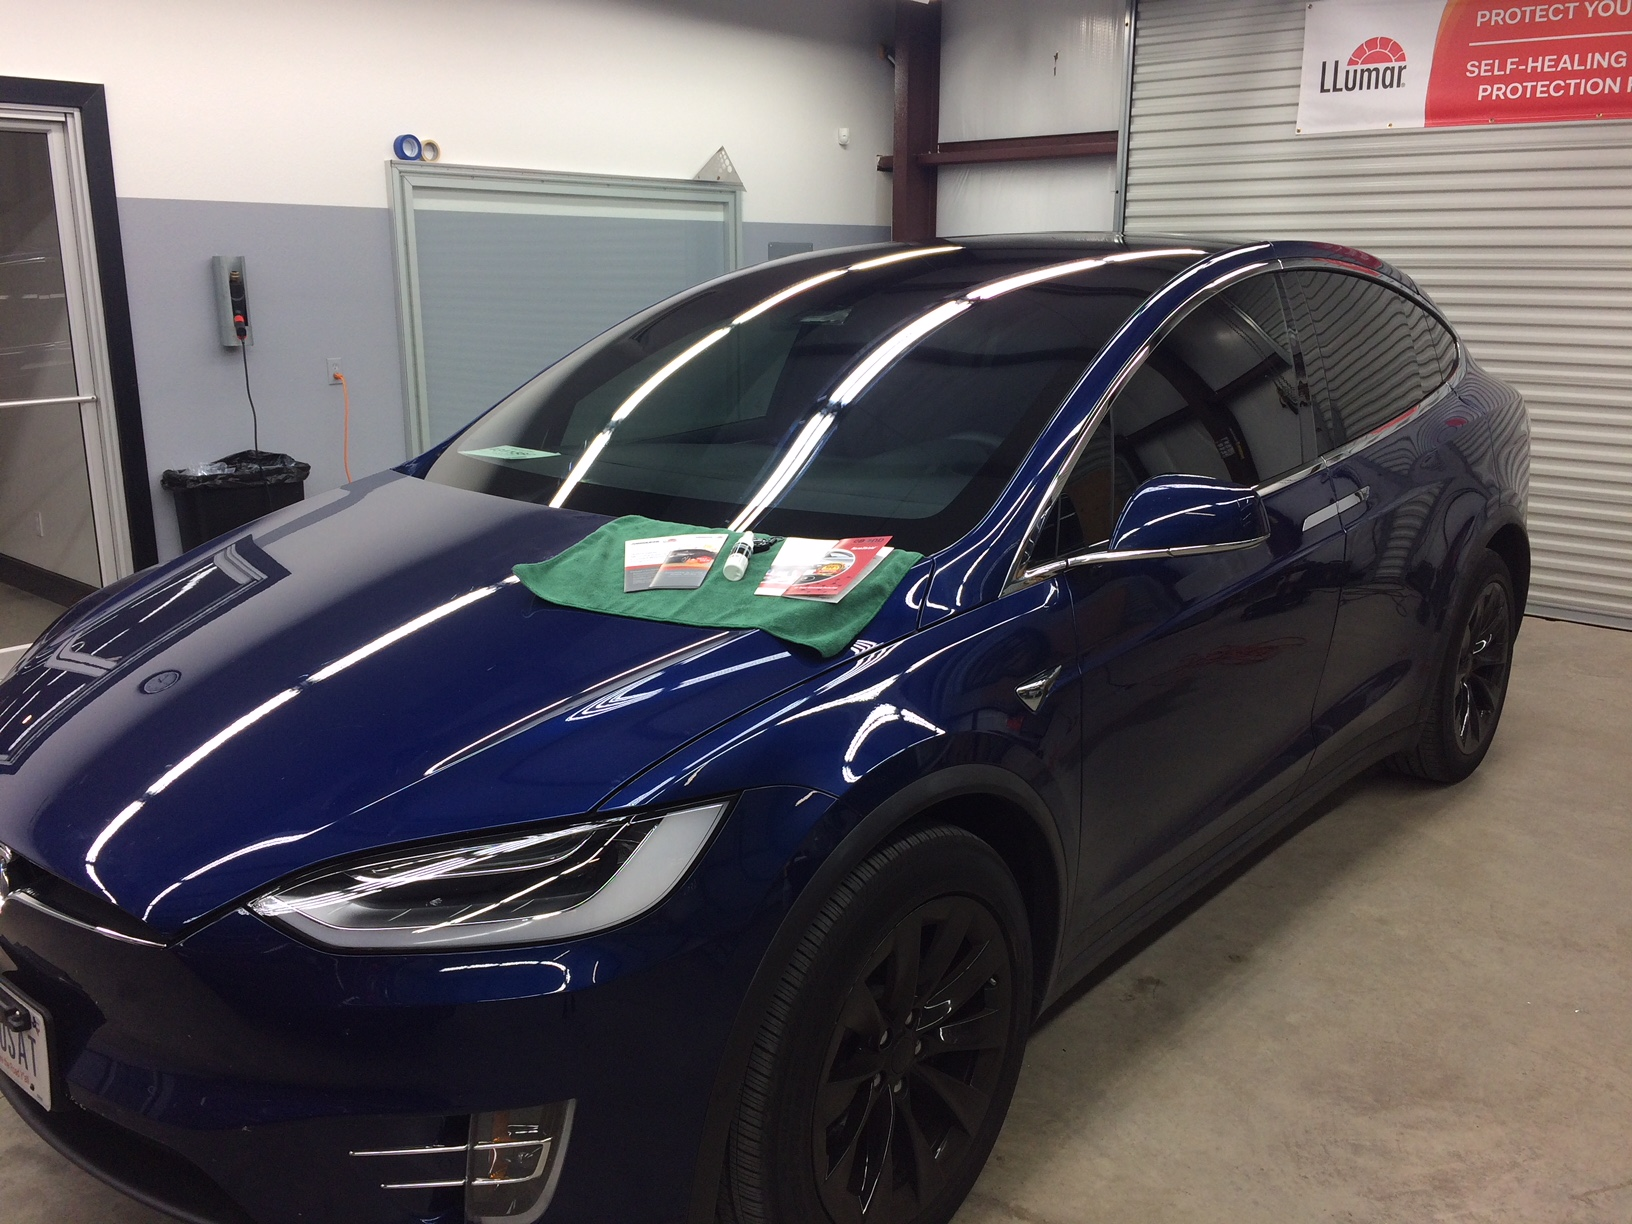 Tesla Paint protection and window tinting installation